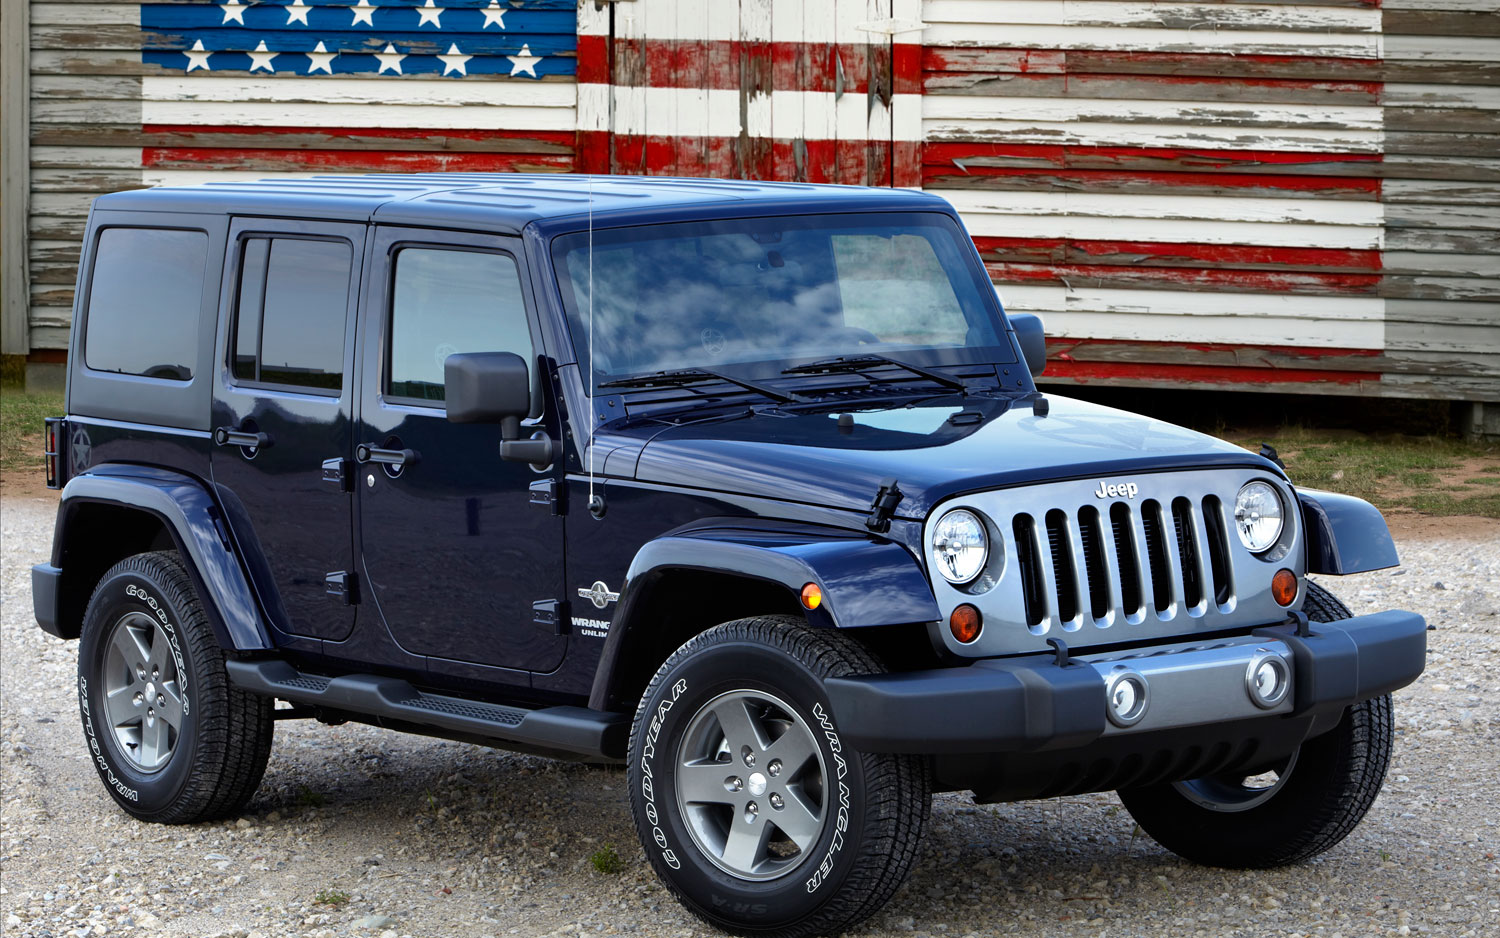 High Quality Military Inspired 2012 Jeep Wrangler Freedom Edition Unveiled